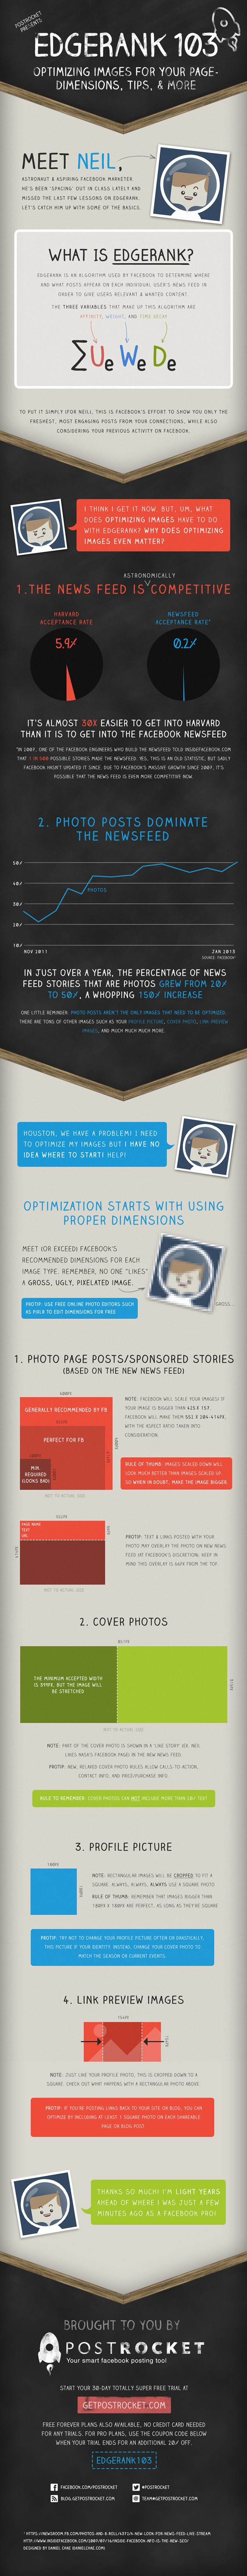 how_to_optimize_images_for_your_facebook_page